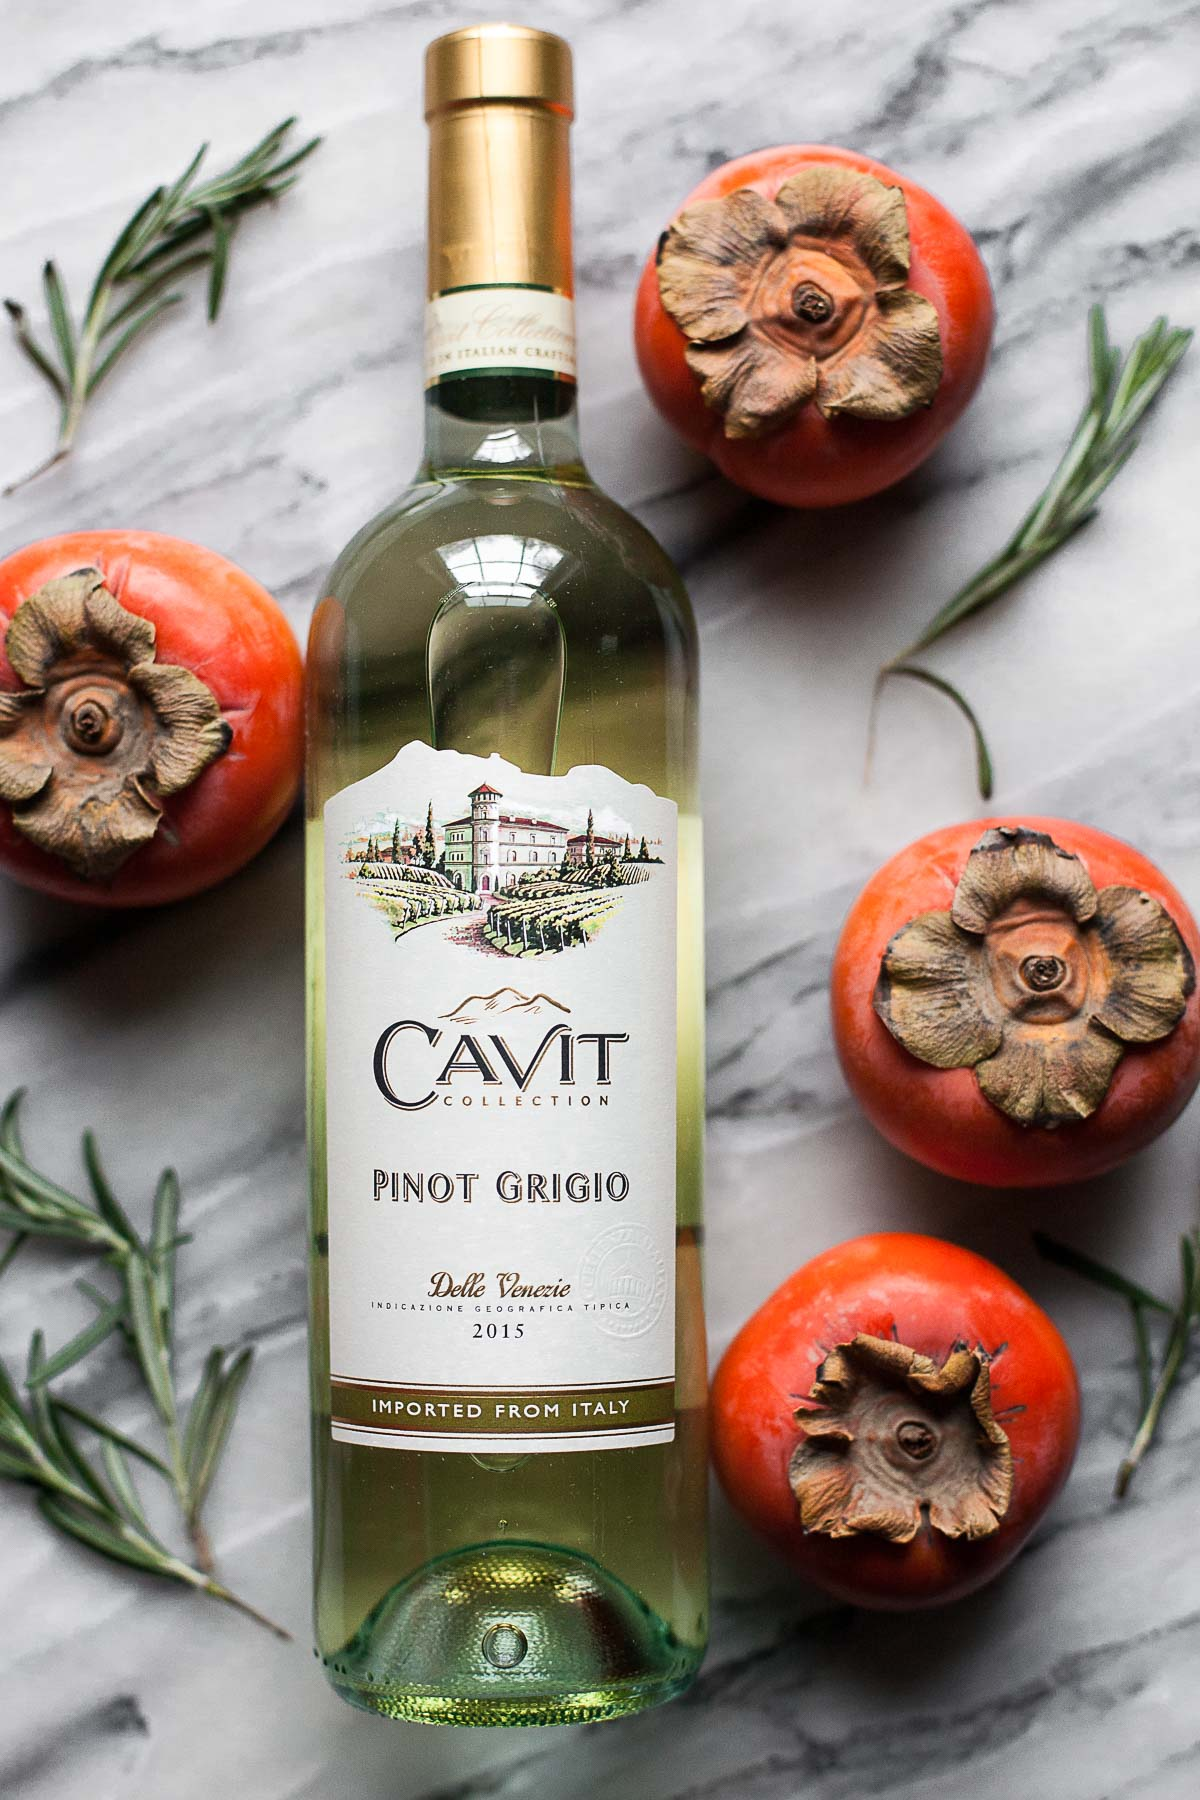 Cavit Pinot Grigio pairs well with Persimmon Bacon Bites with Rosemary Goat Cheese